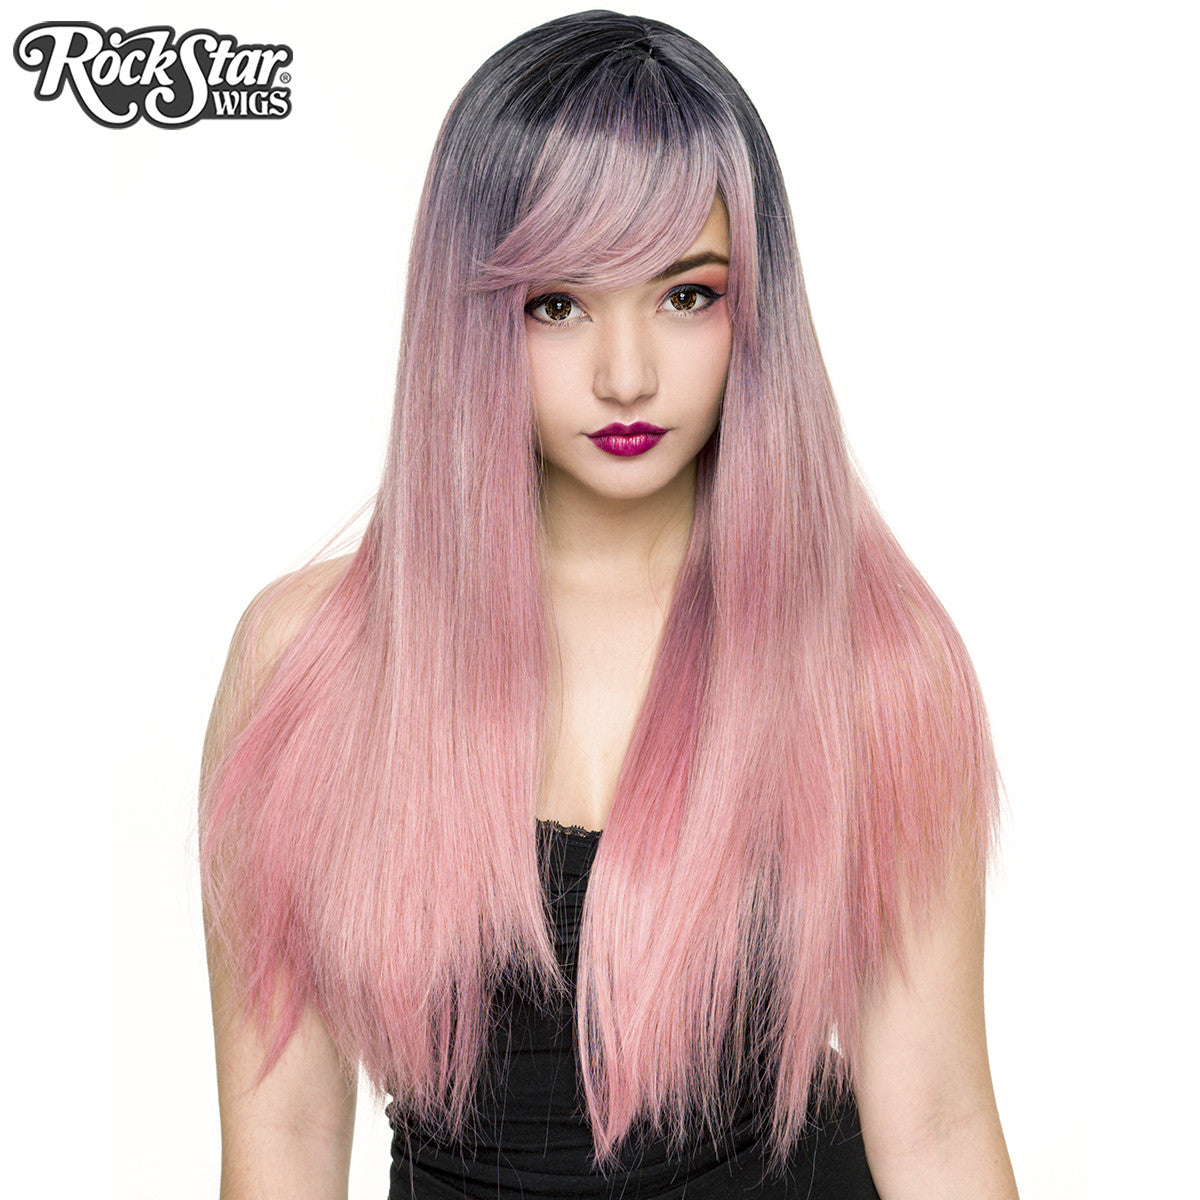 RockStar Wigs®  Bella Dark Root™ Collection - Milkshake Pink  -00824